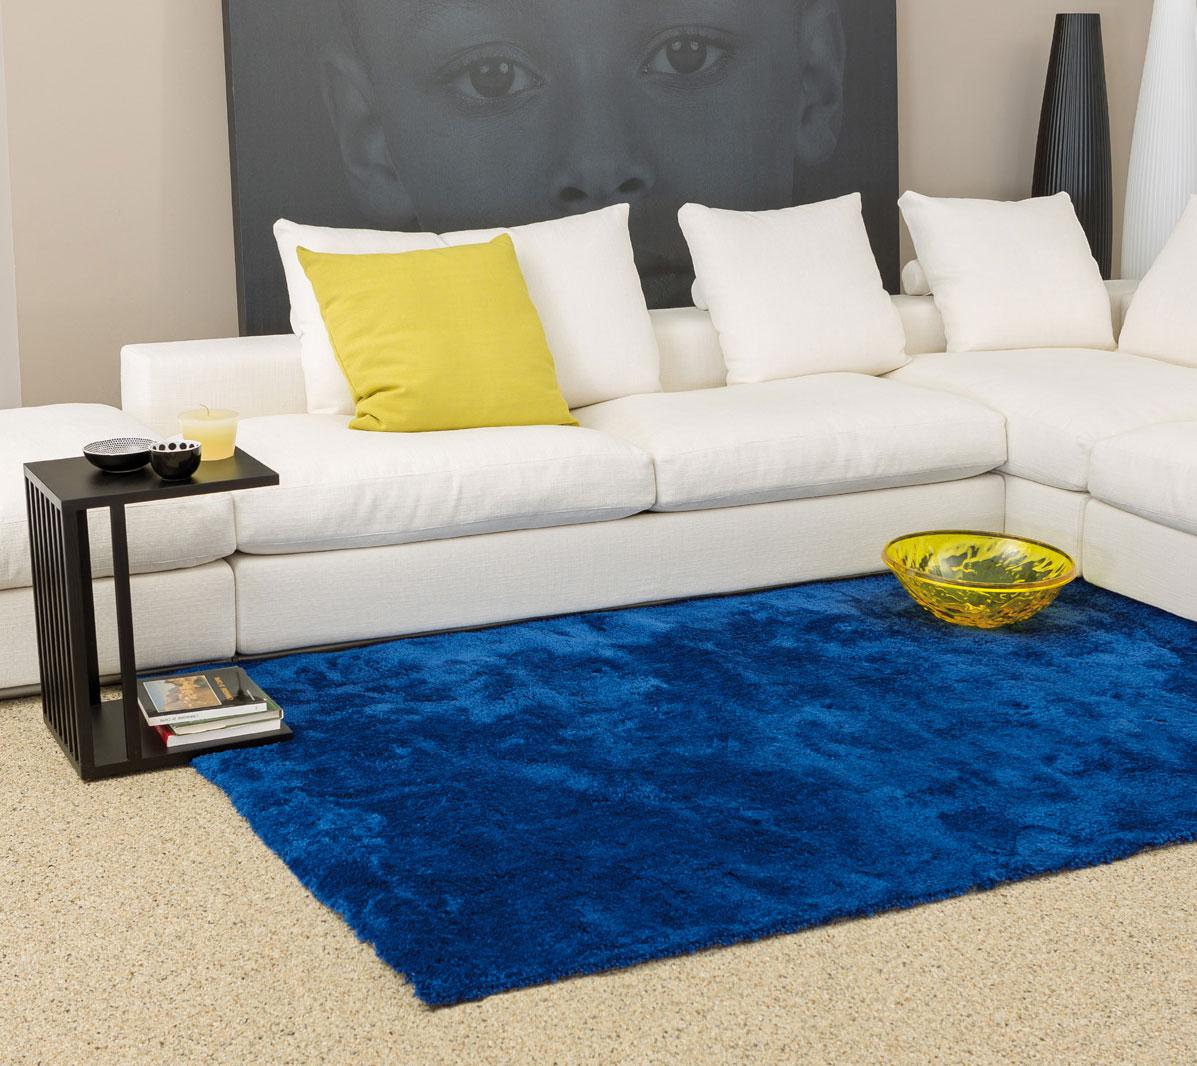 carpet prices. luxury carpet prices yacht furniture store design made in italy manufacturer online shop original